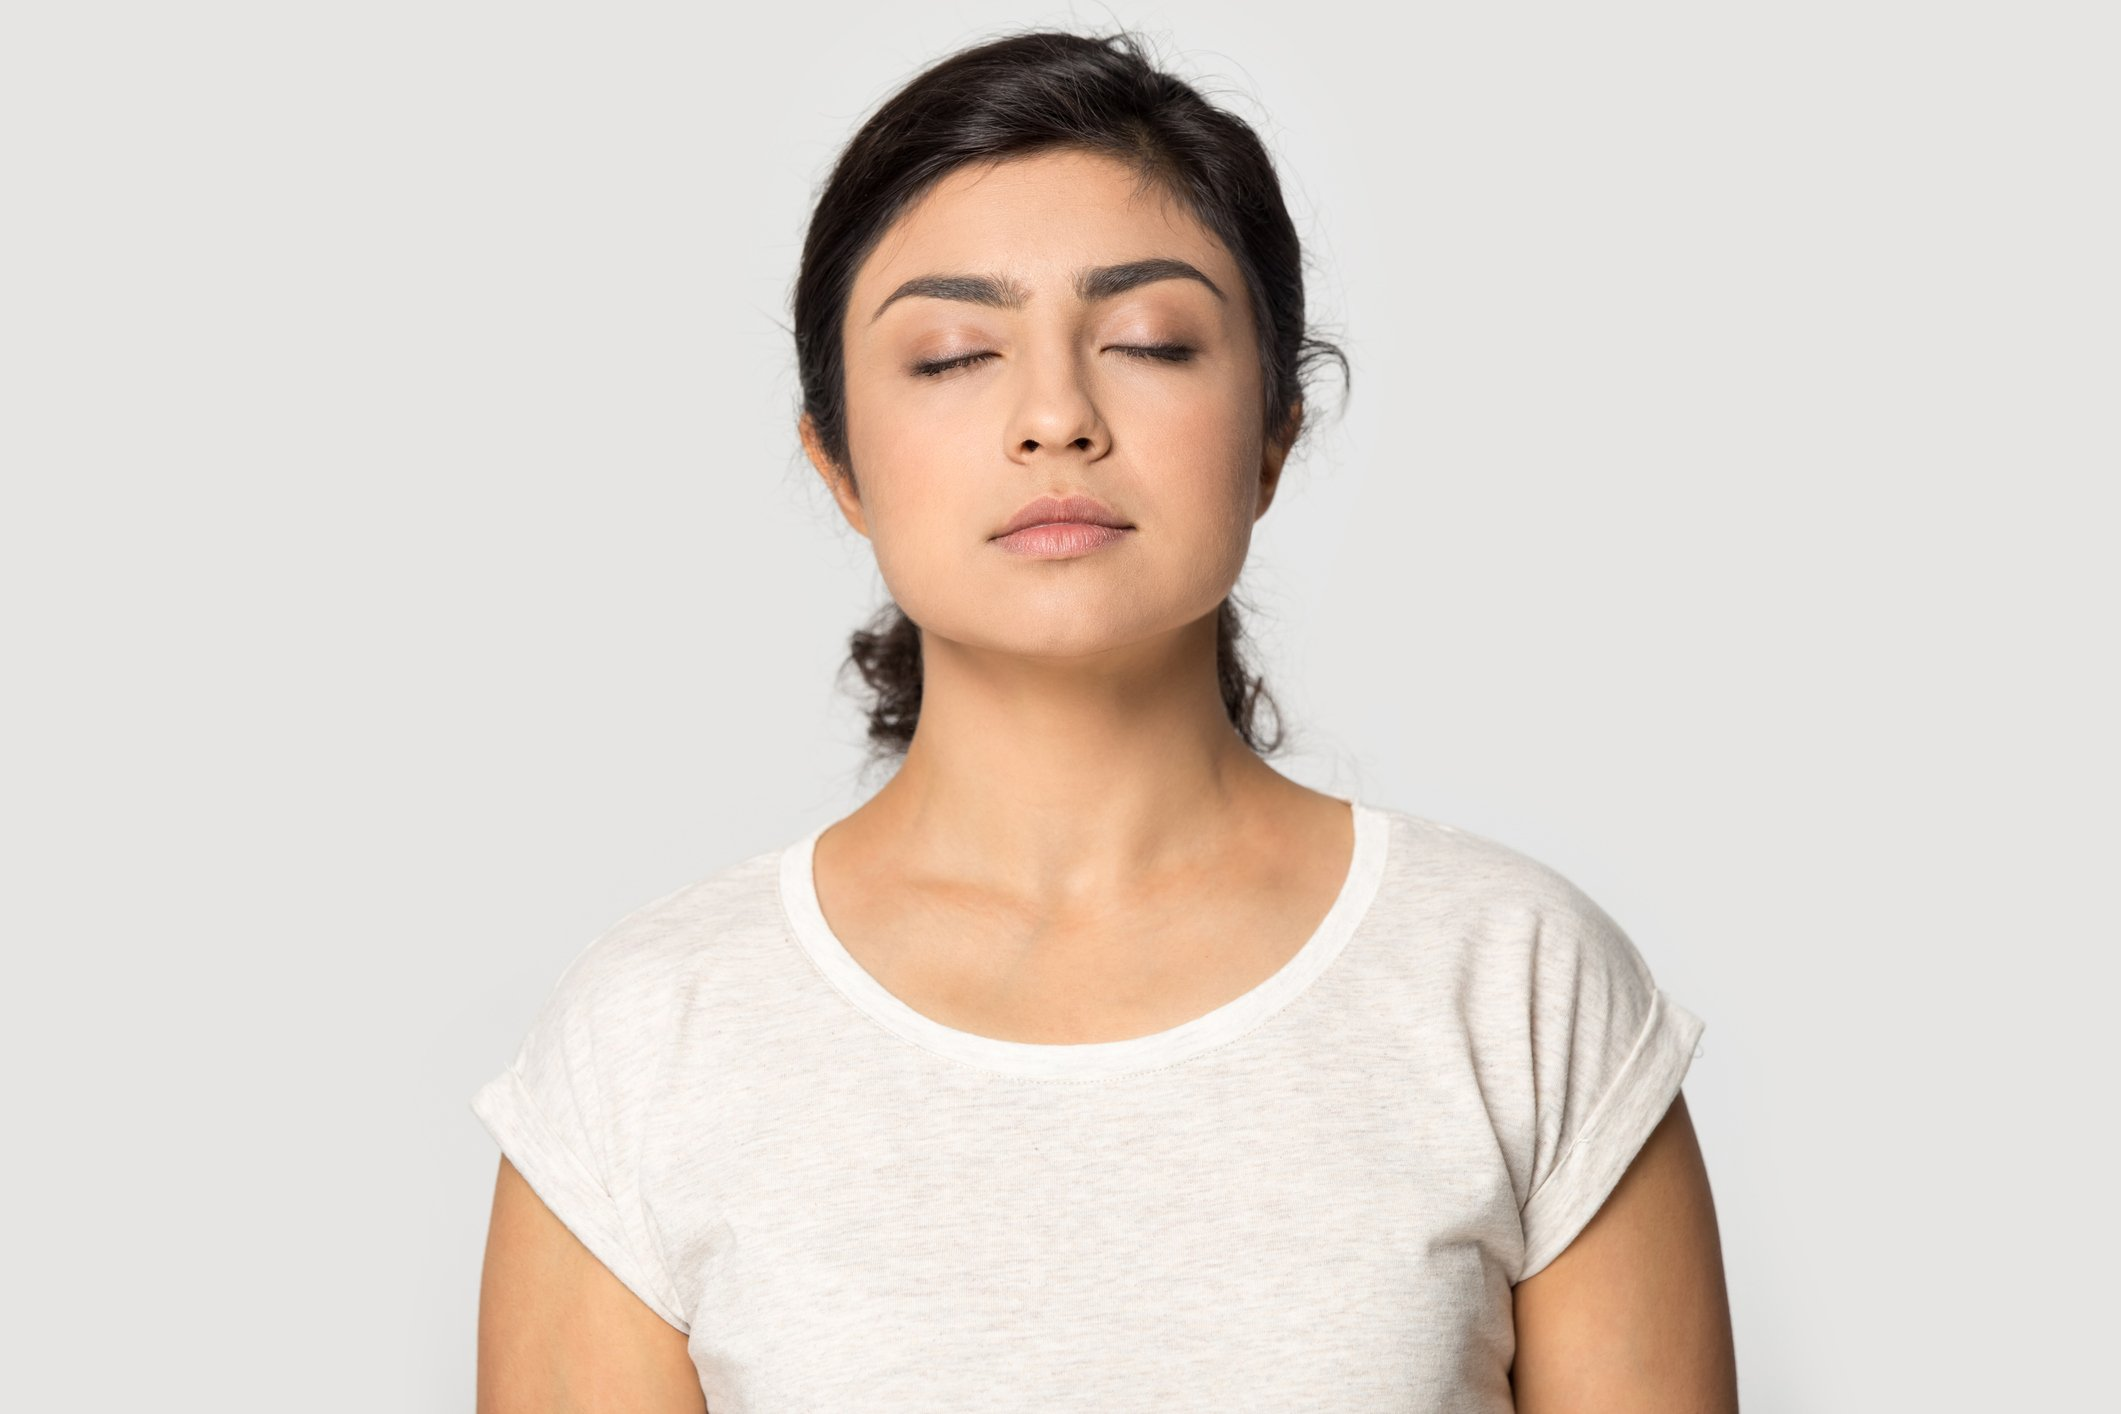 Peaceful millennial indian girl isolated on grey studio background relieve negative emotions breathe fresh air, calm young ethnic woman meditate with eyes closed, stress free, meditation concept